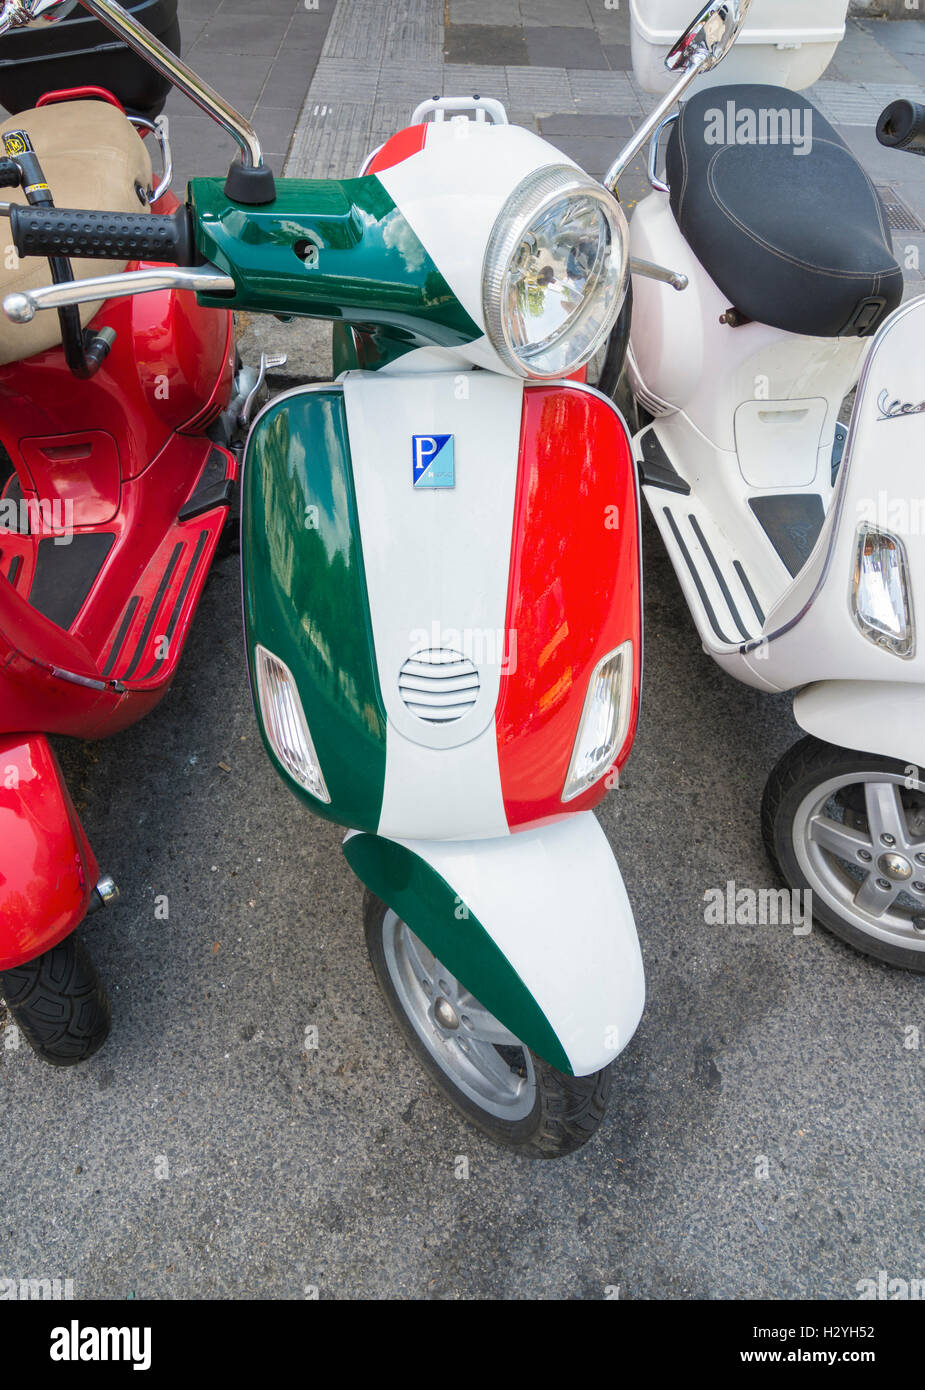 piaggio scooter in italian flag colours parked in a line of